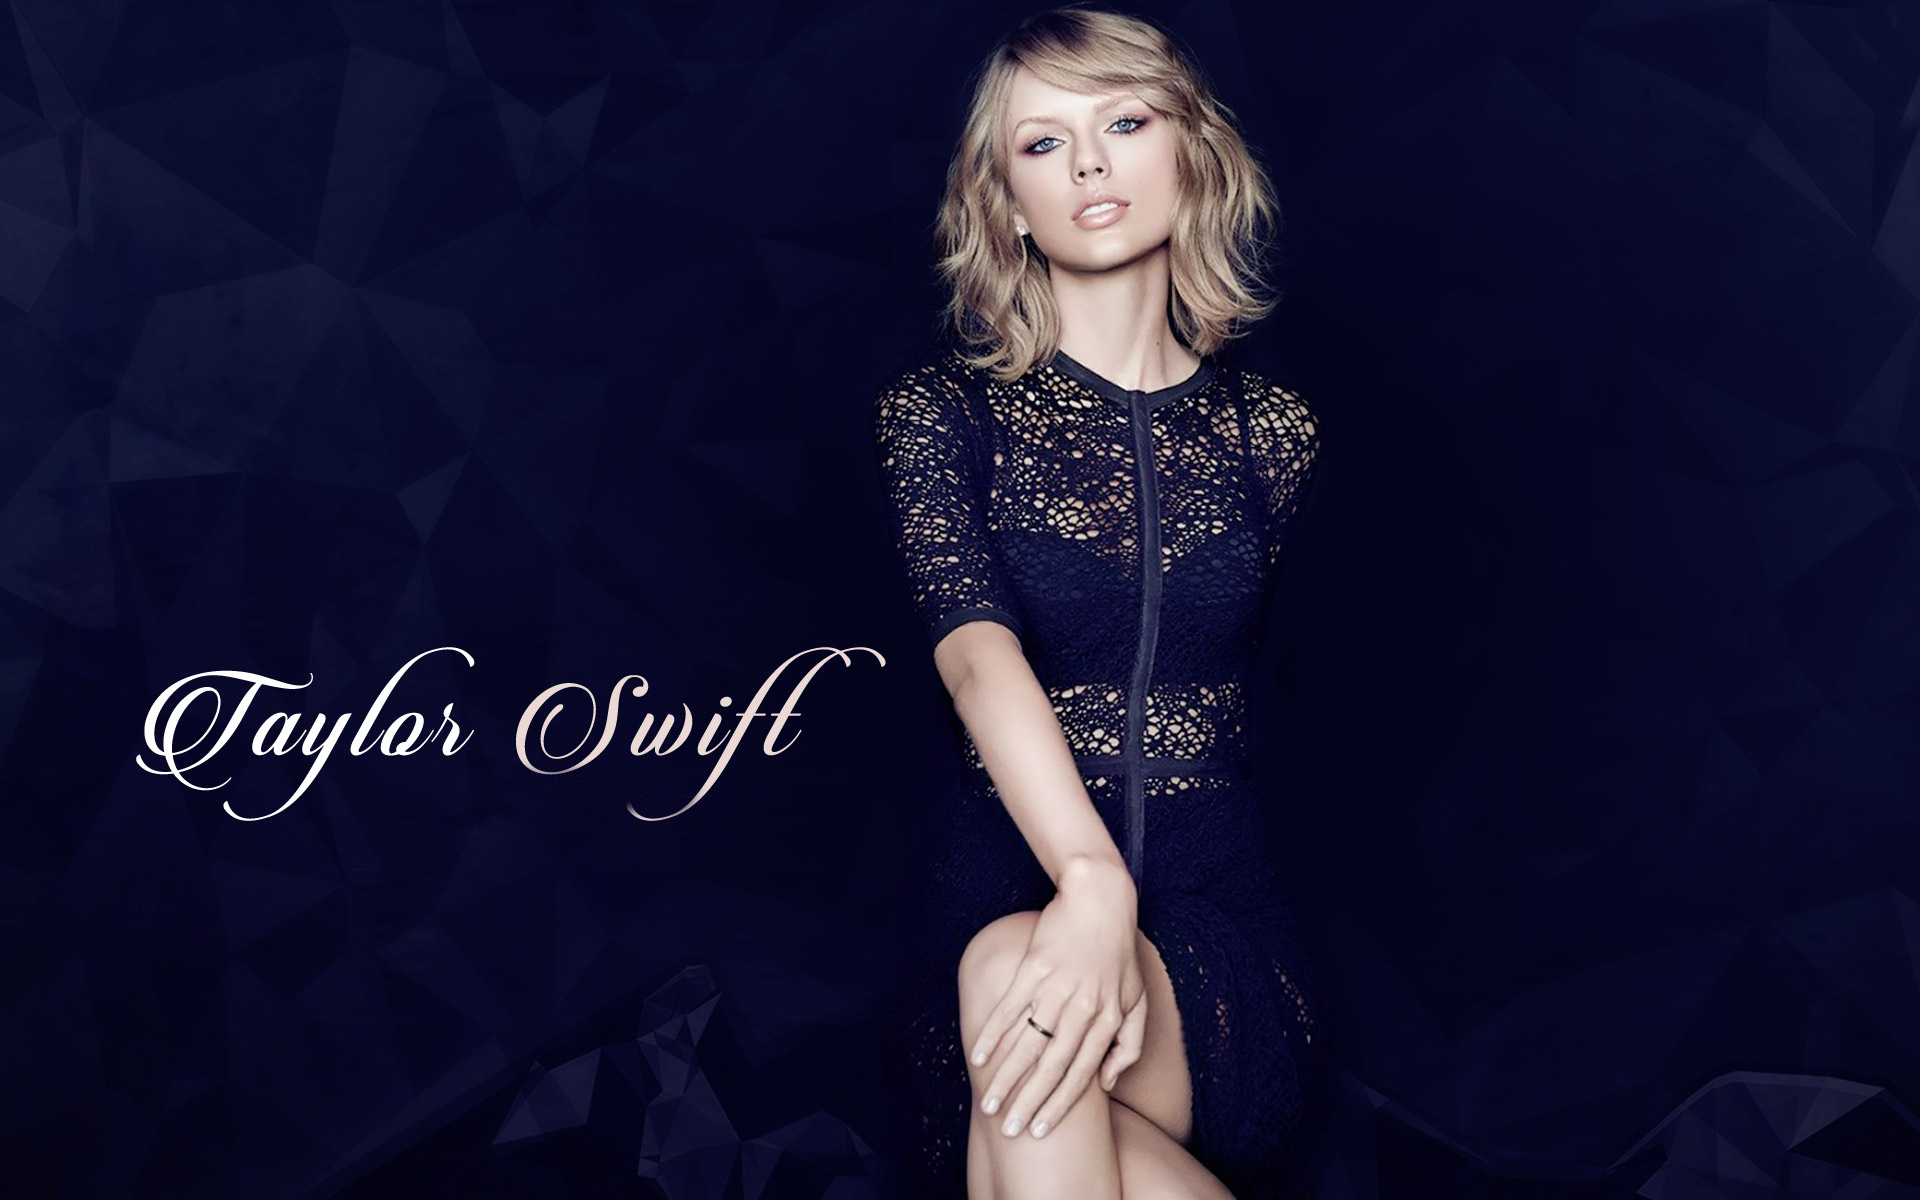 taylor swift wallpaper wallpapers full hd 1920x1200